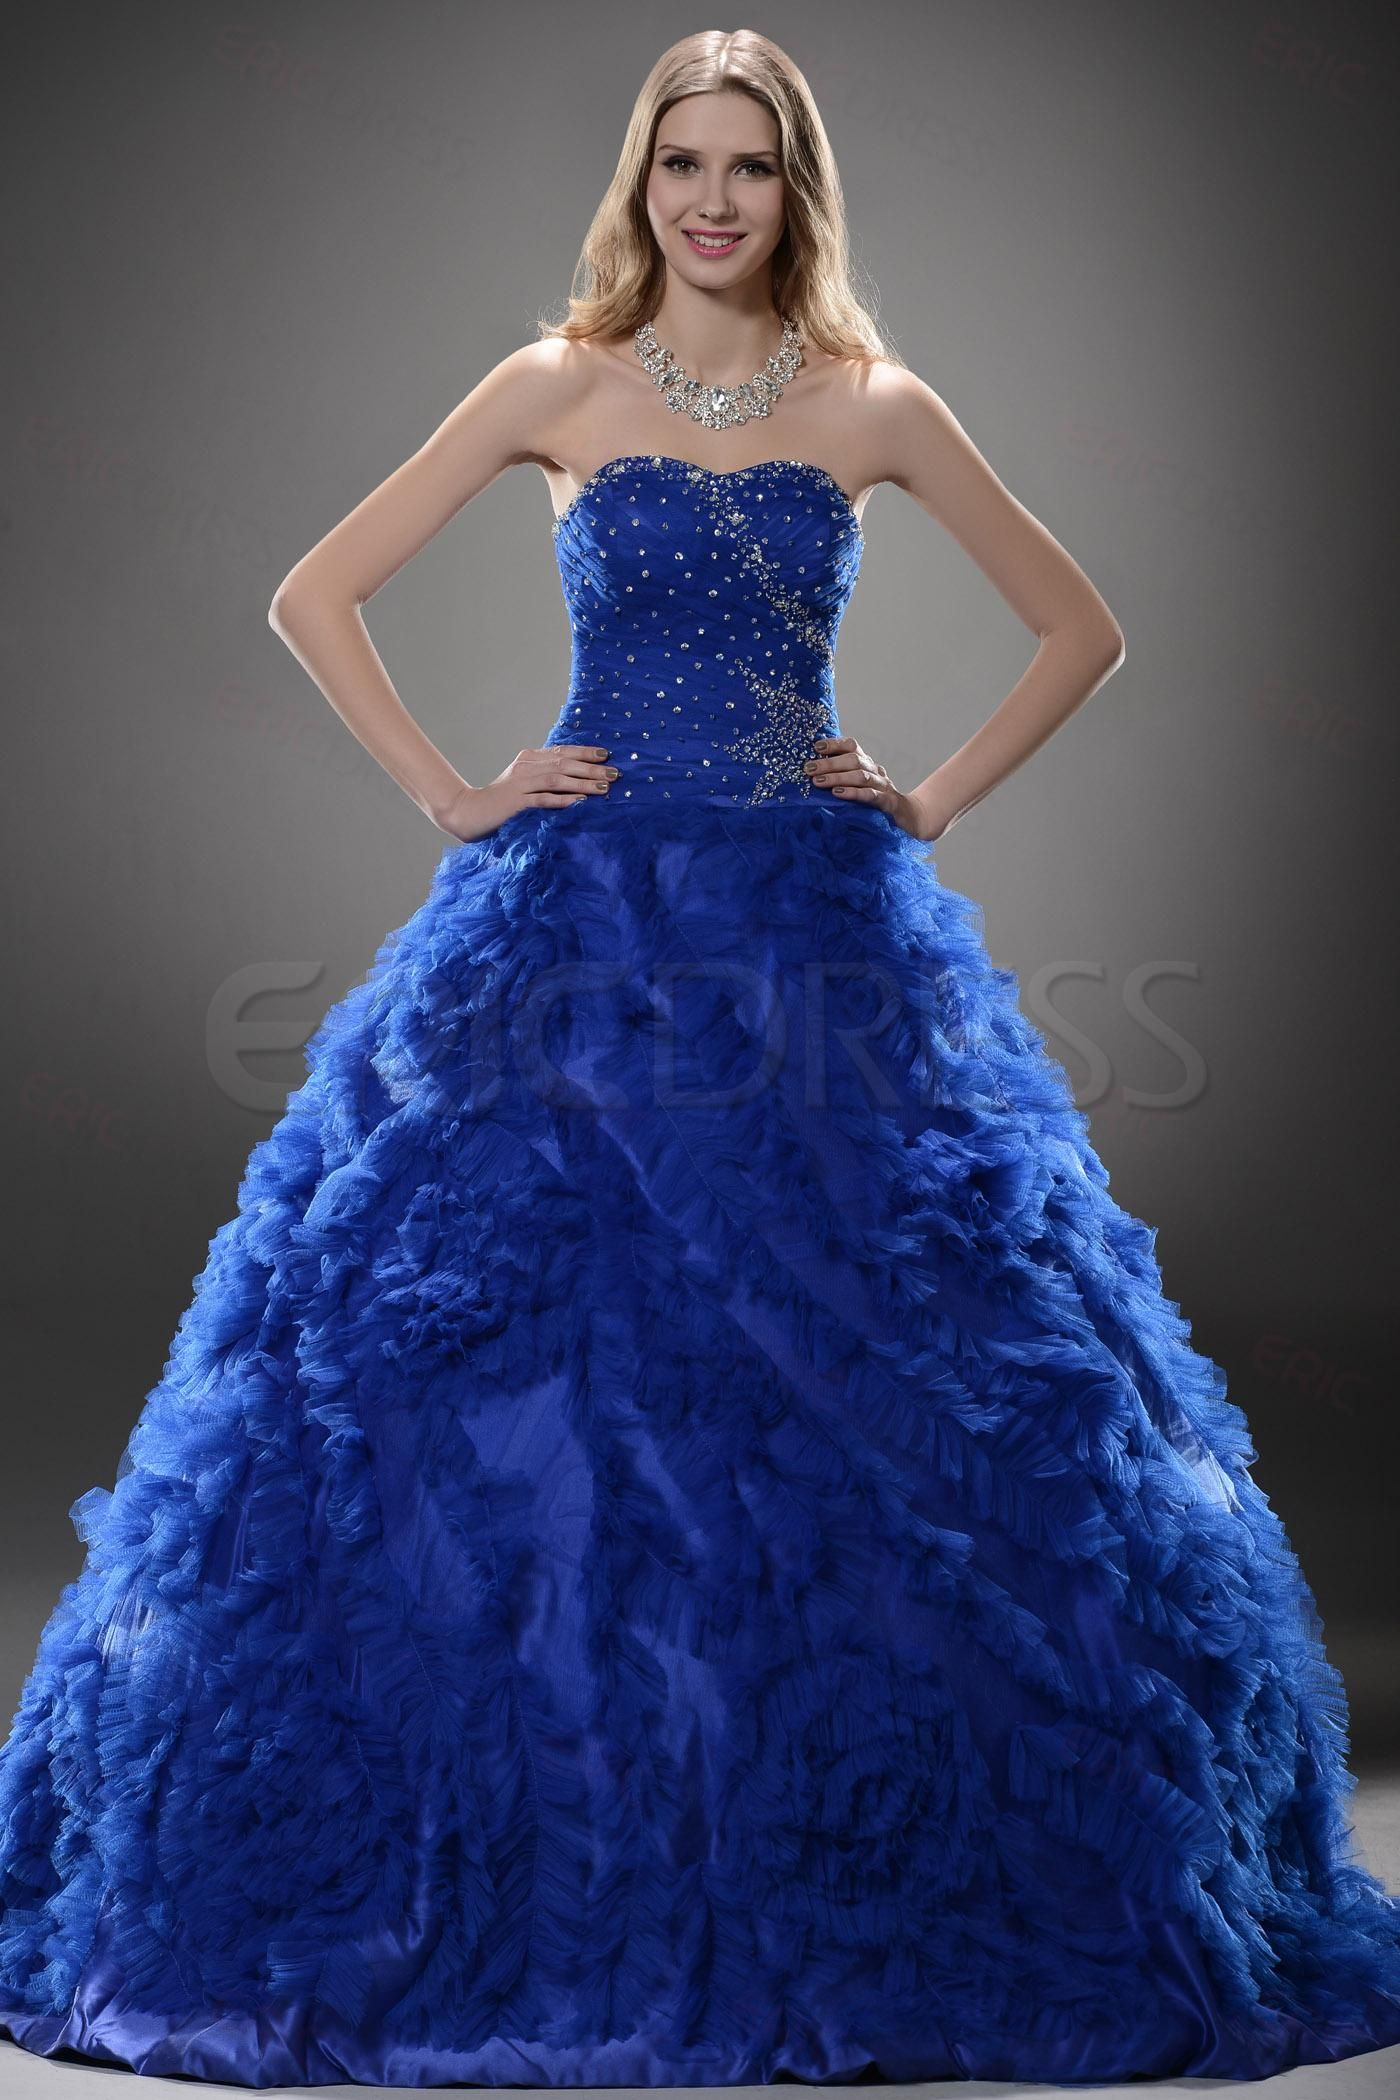 Luxurious Ball Gown Floor-length Sweetheart Quinceanera Prom Dress ...